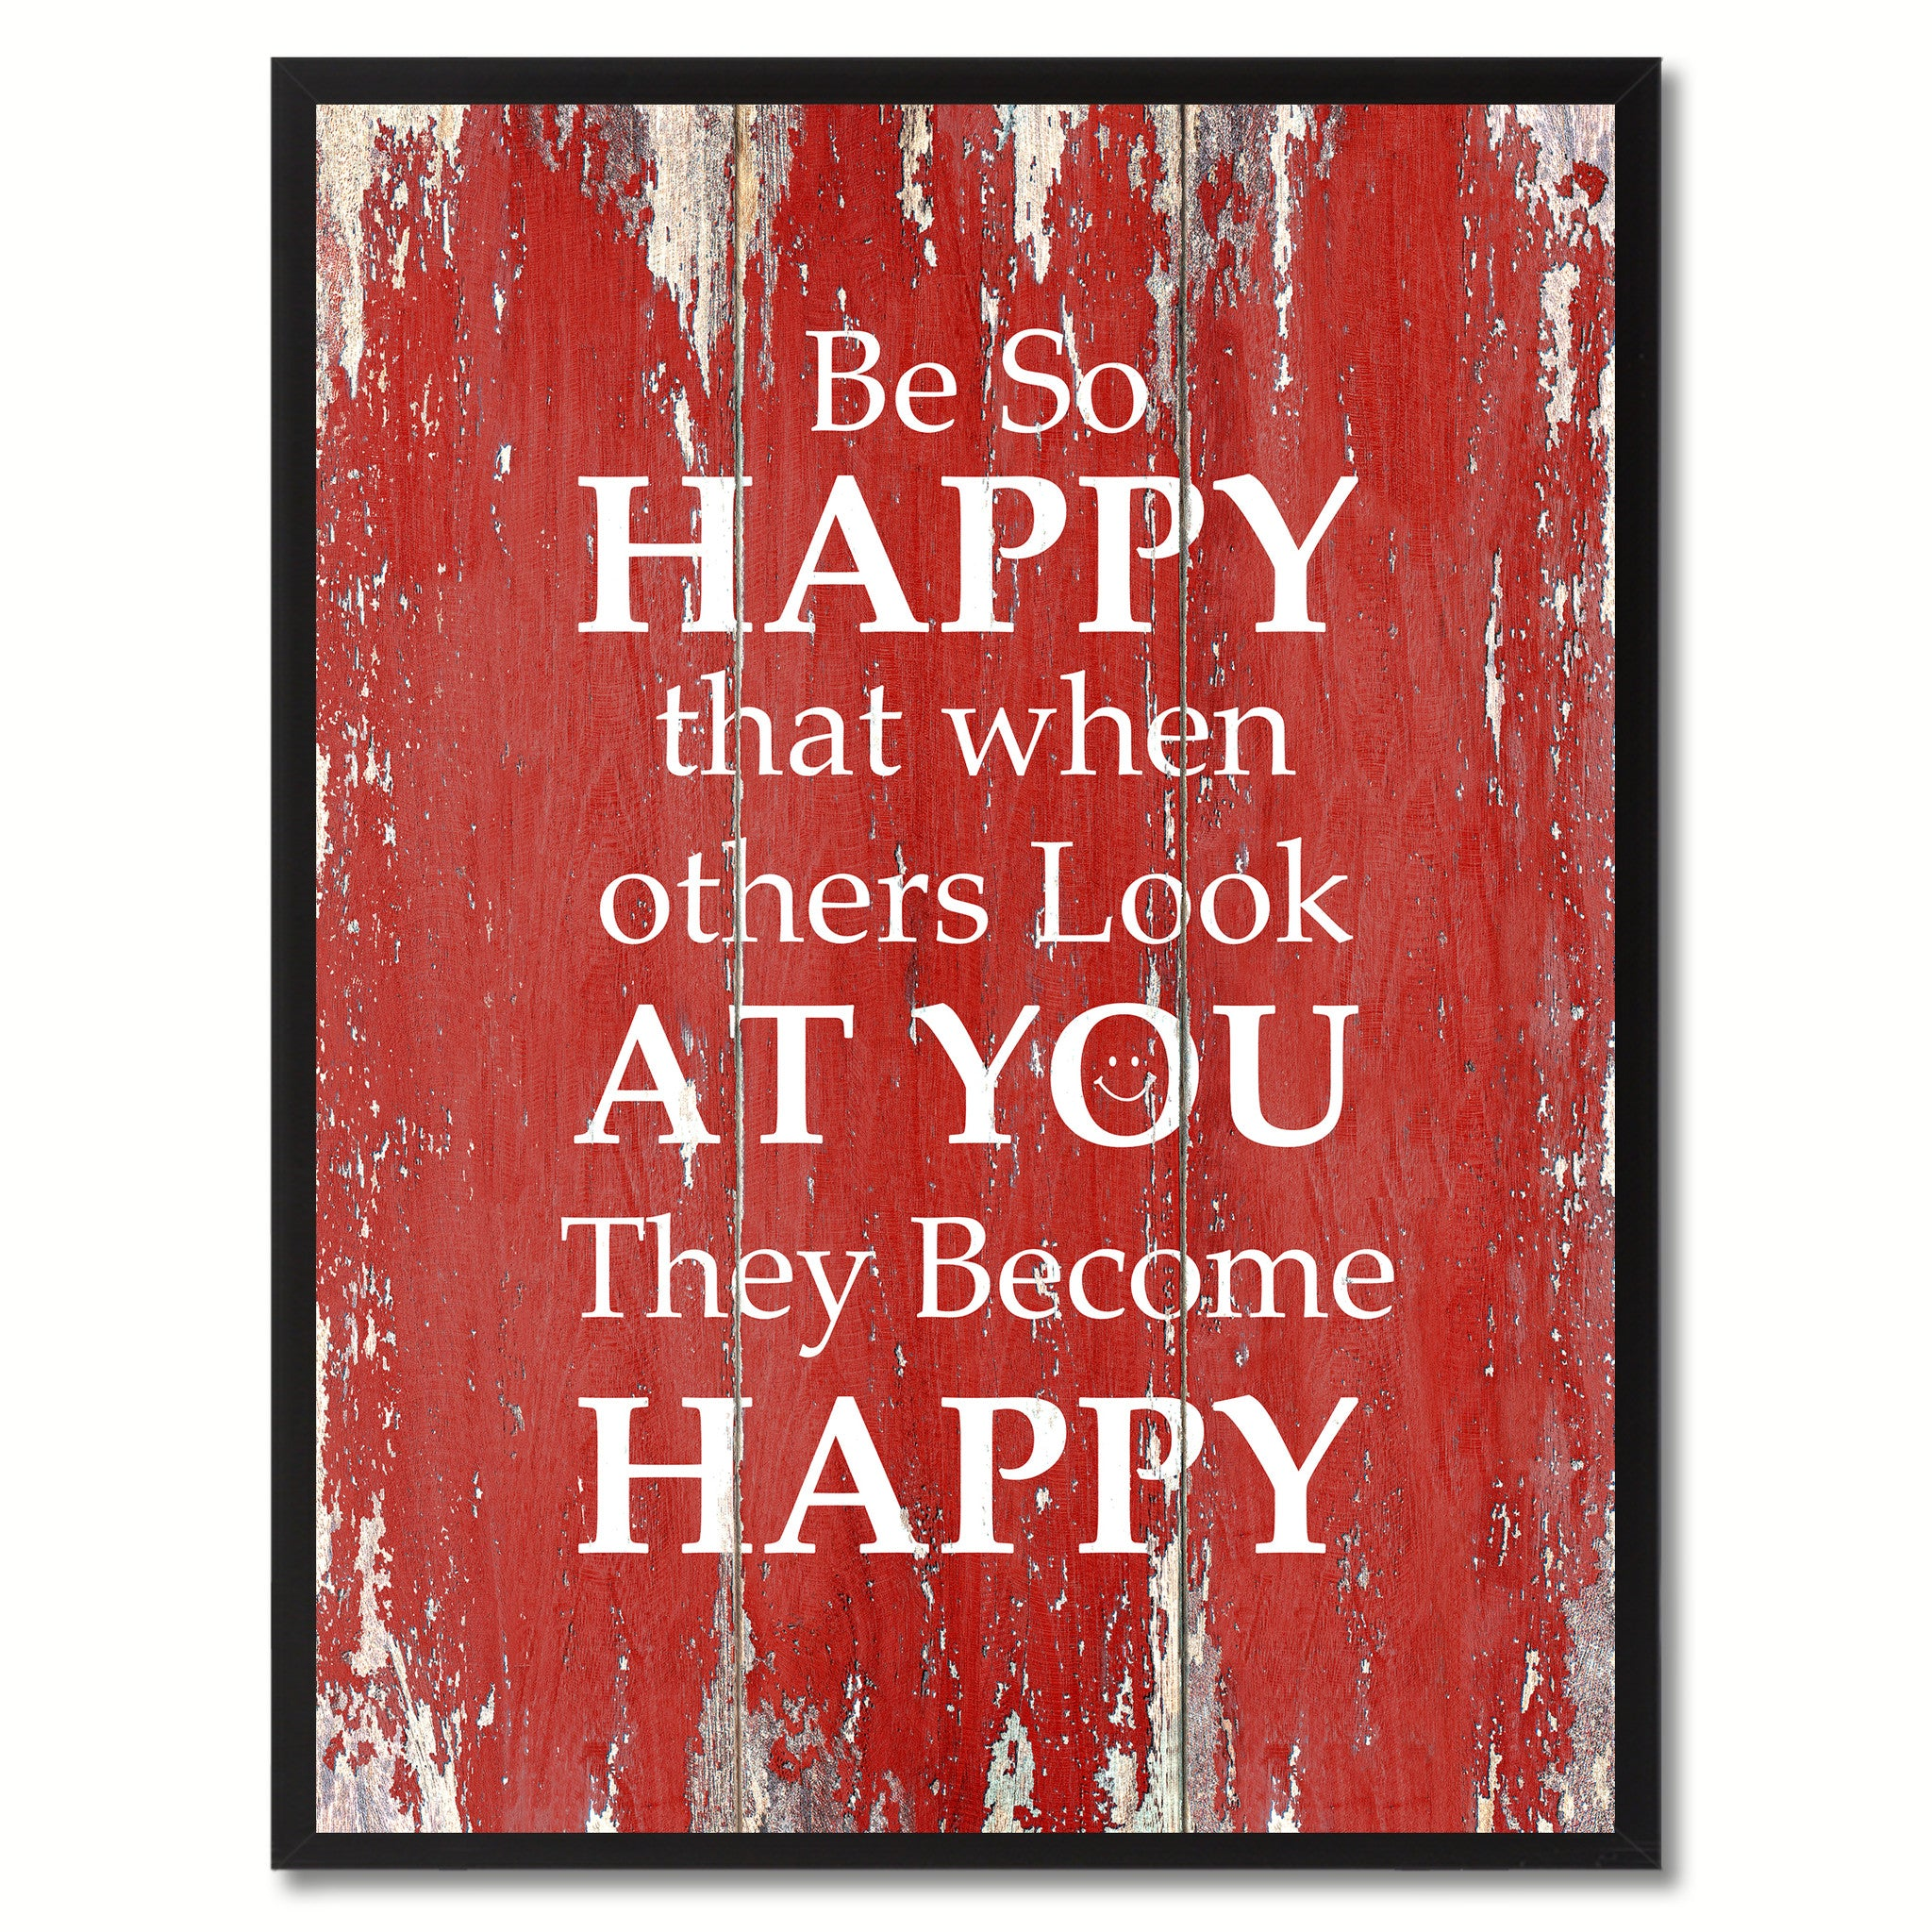 Be So Happy That When Others Look At You Saying Canvas Print, Black Picture Frame Home Decor Wall Art Gifts